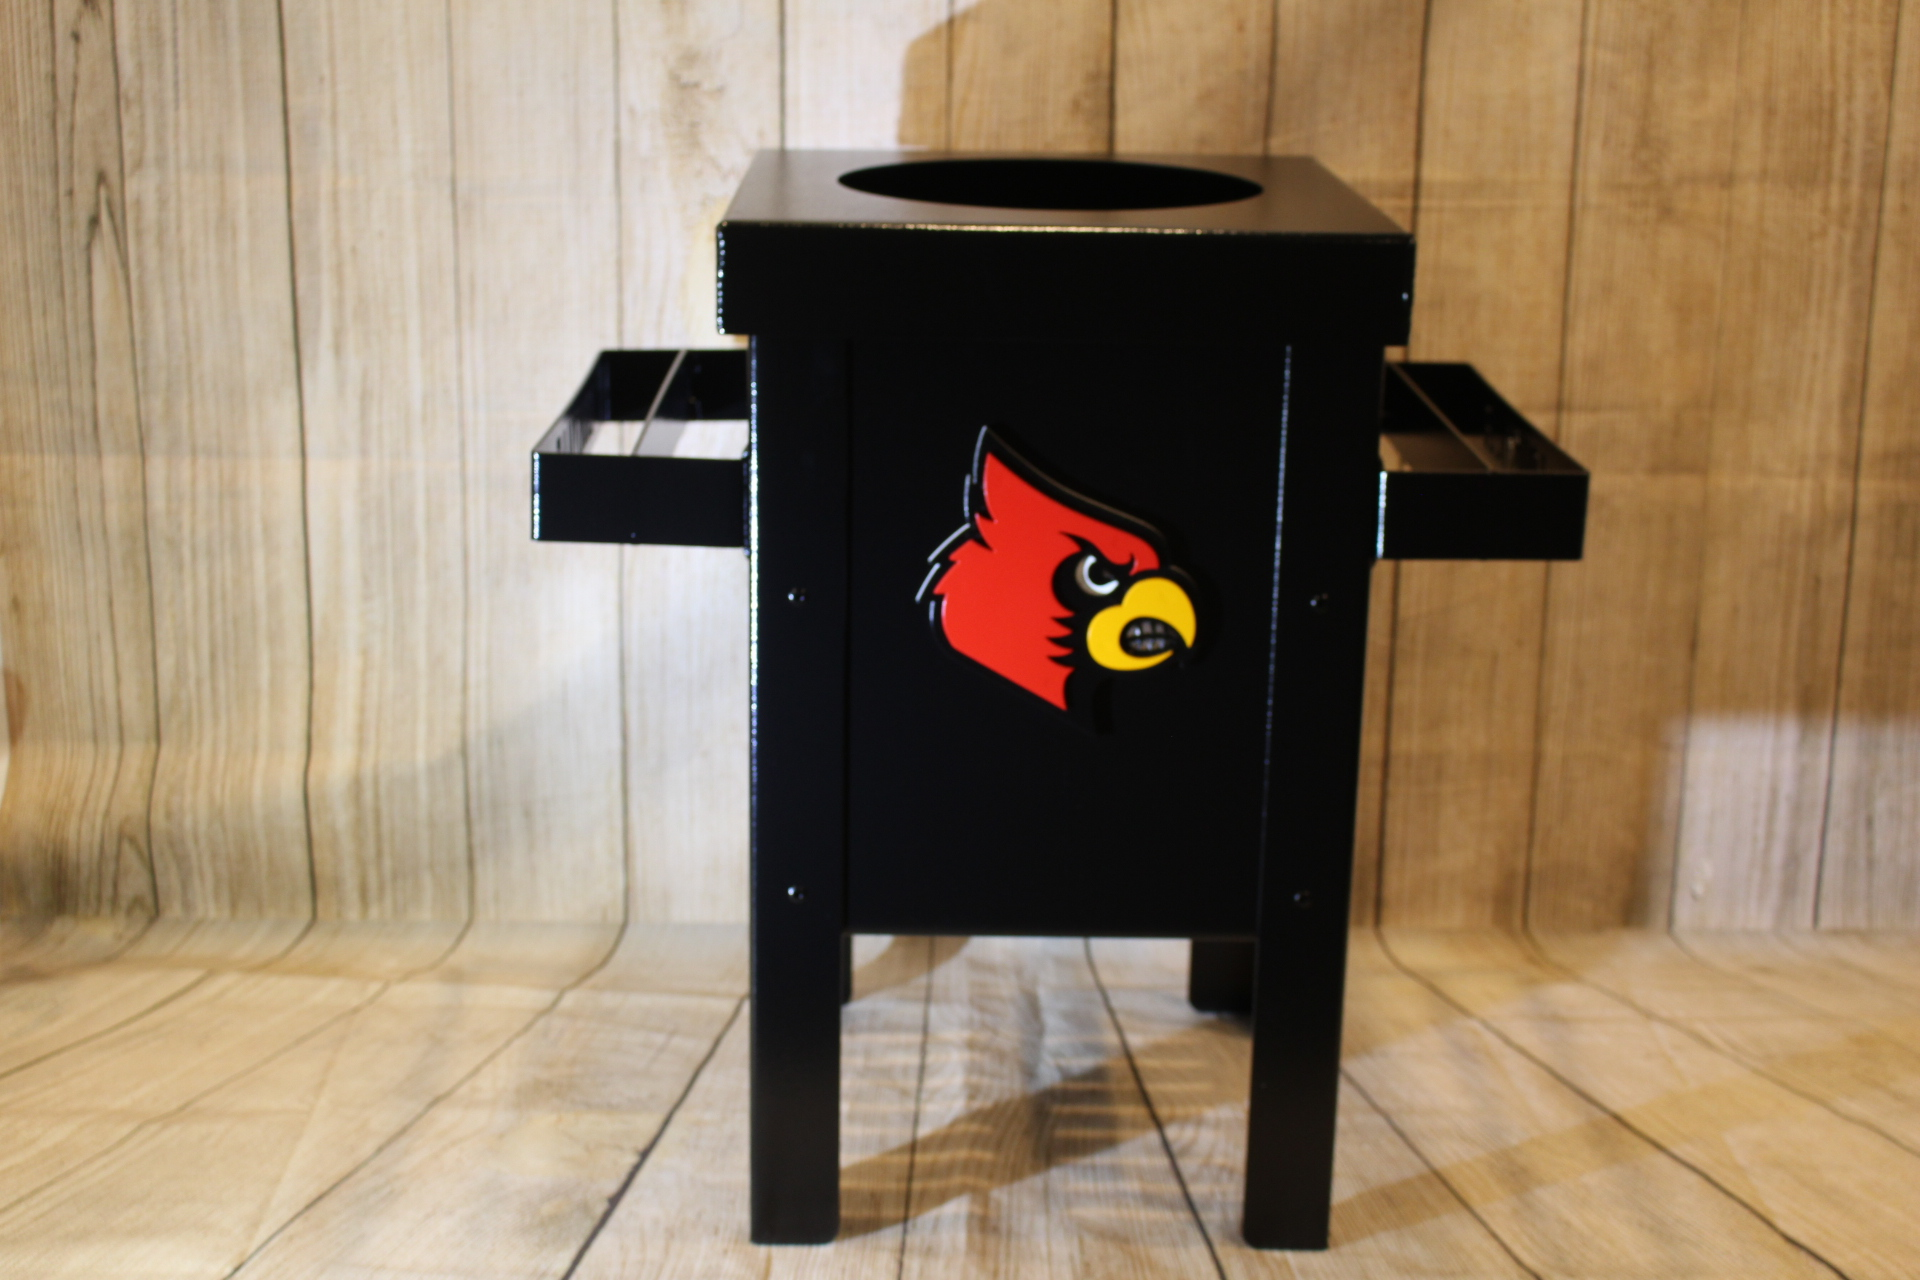 Club-Cleaning-Station-University-of-Louisville-Athletics